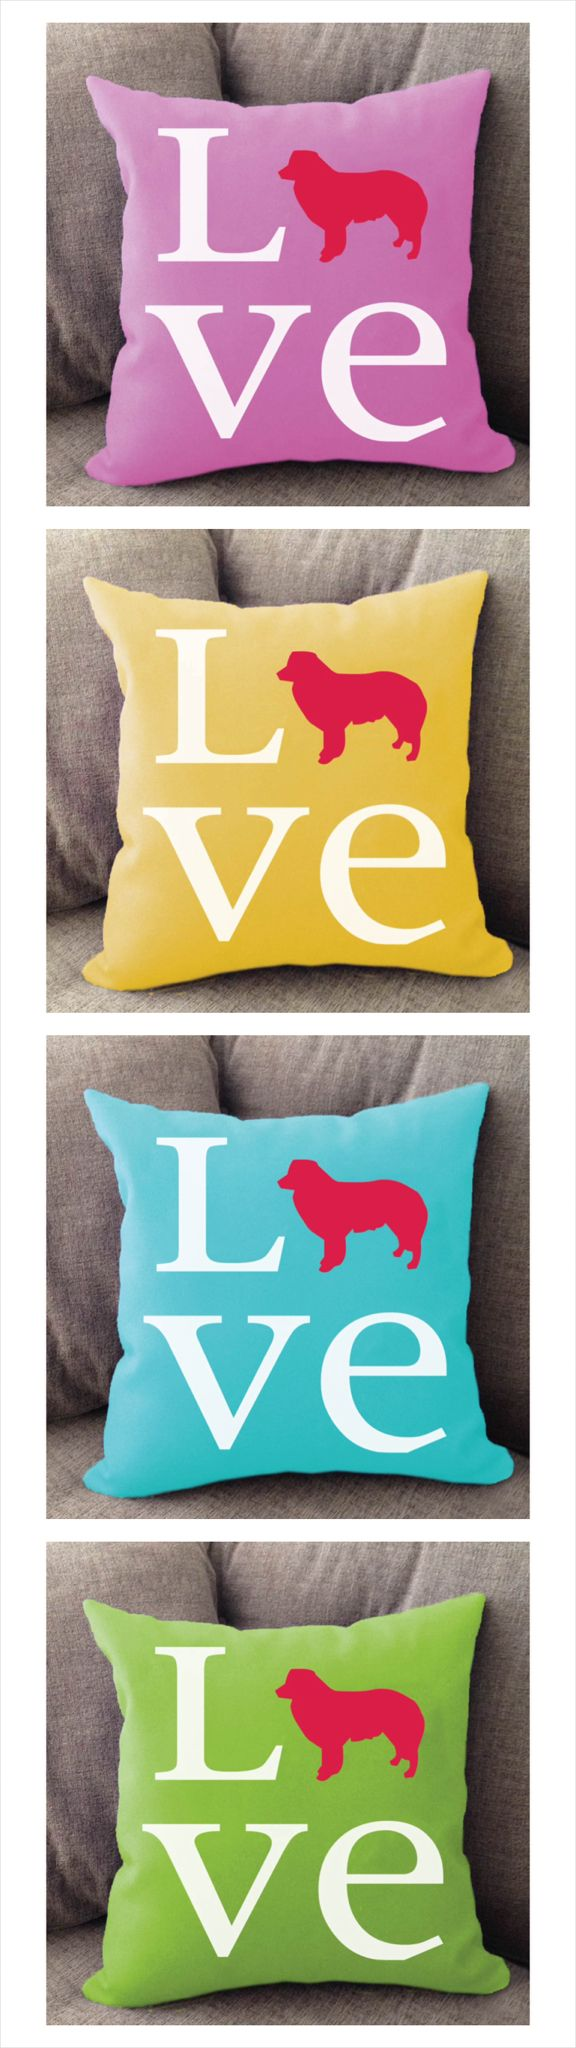 Border Collie Love pillow. Offered in multiple colors and 50+ dog breeds. Cover is machine washable and Made in USA.